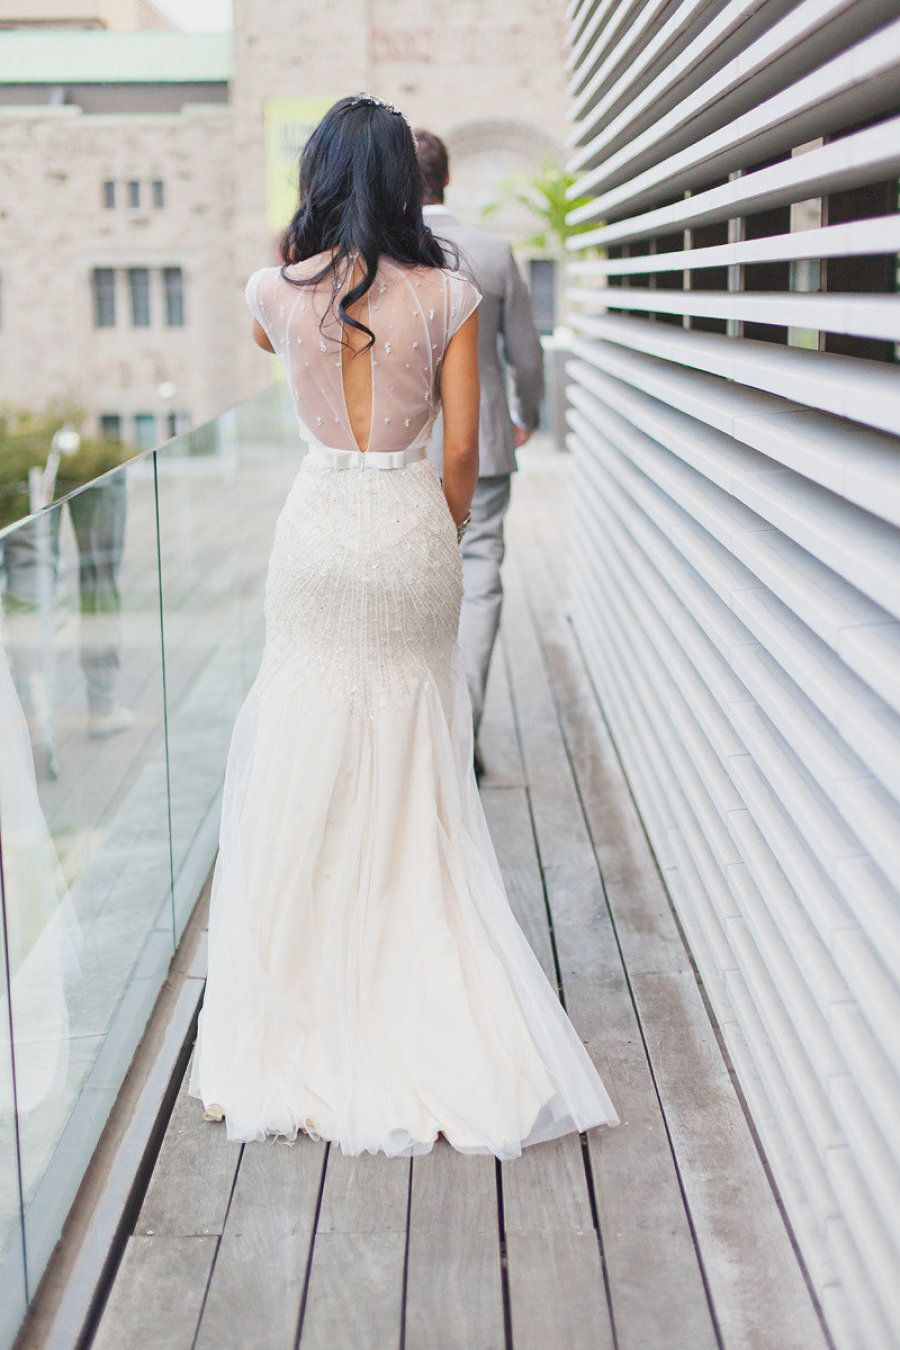 Toronto Wedding At The Gardiner Museum From Lavish Light Photography Blush DressesUnique